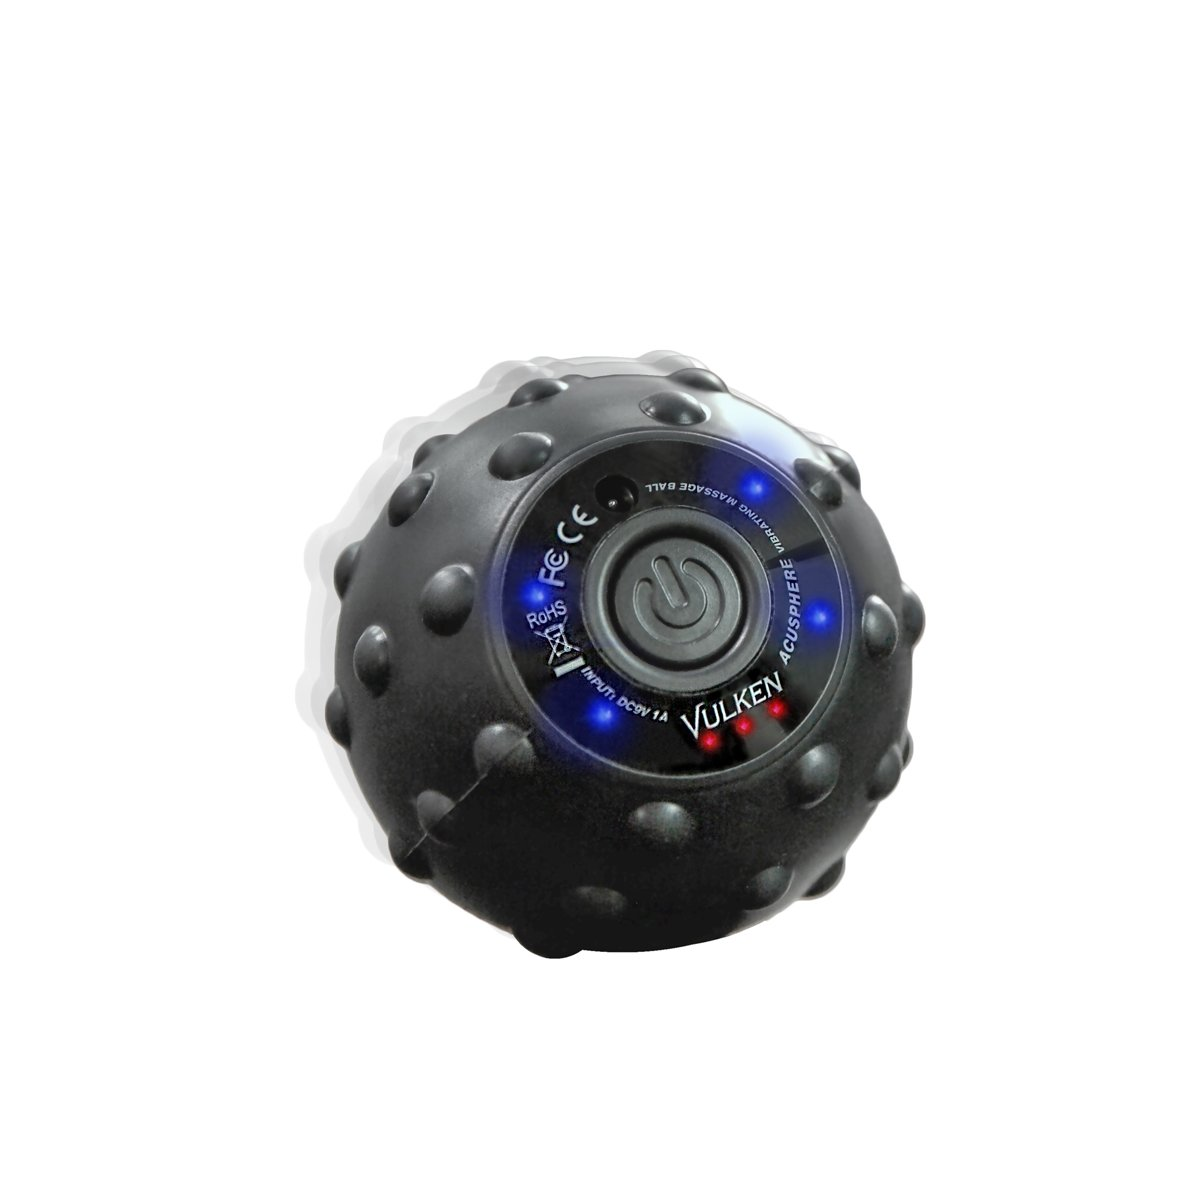 Vulken Acusphere 4 Speed High Intensity Vibrating Massage Ball for Muscle and Fitness, Plantar Fasciitis Pain Relief, Myofascial Release and Trigger Point Treatment by Vulken